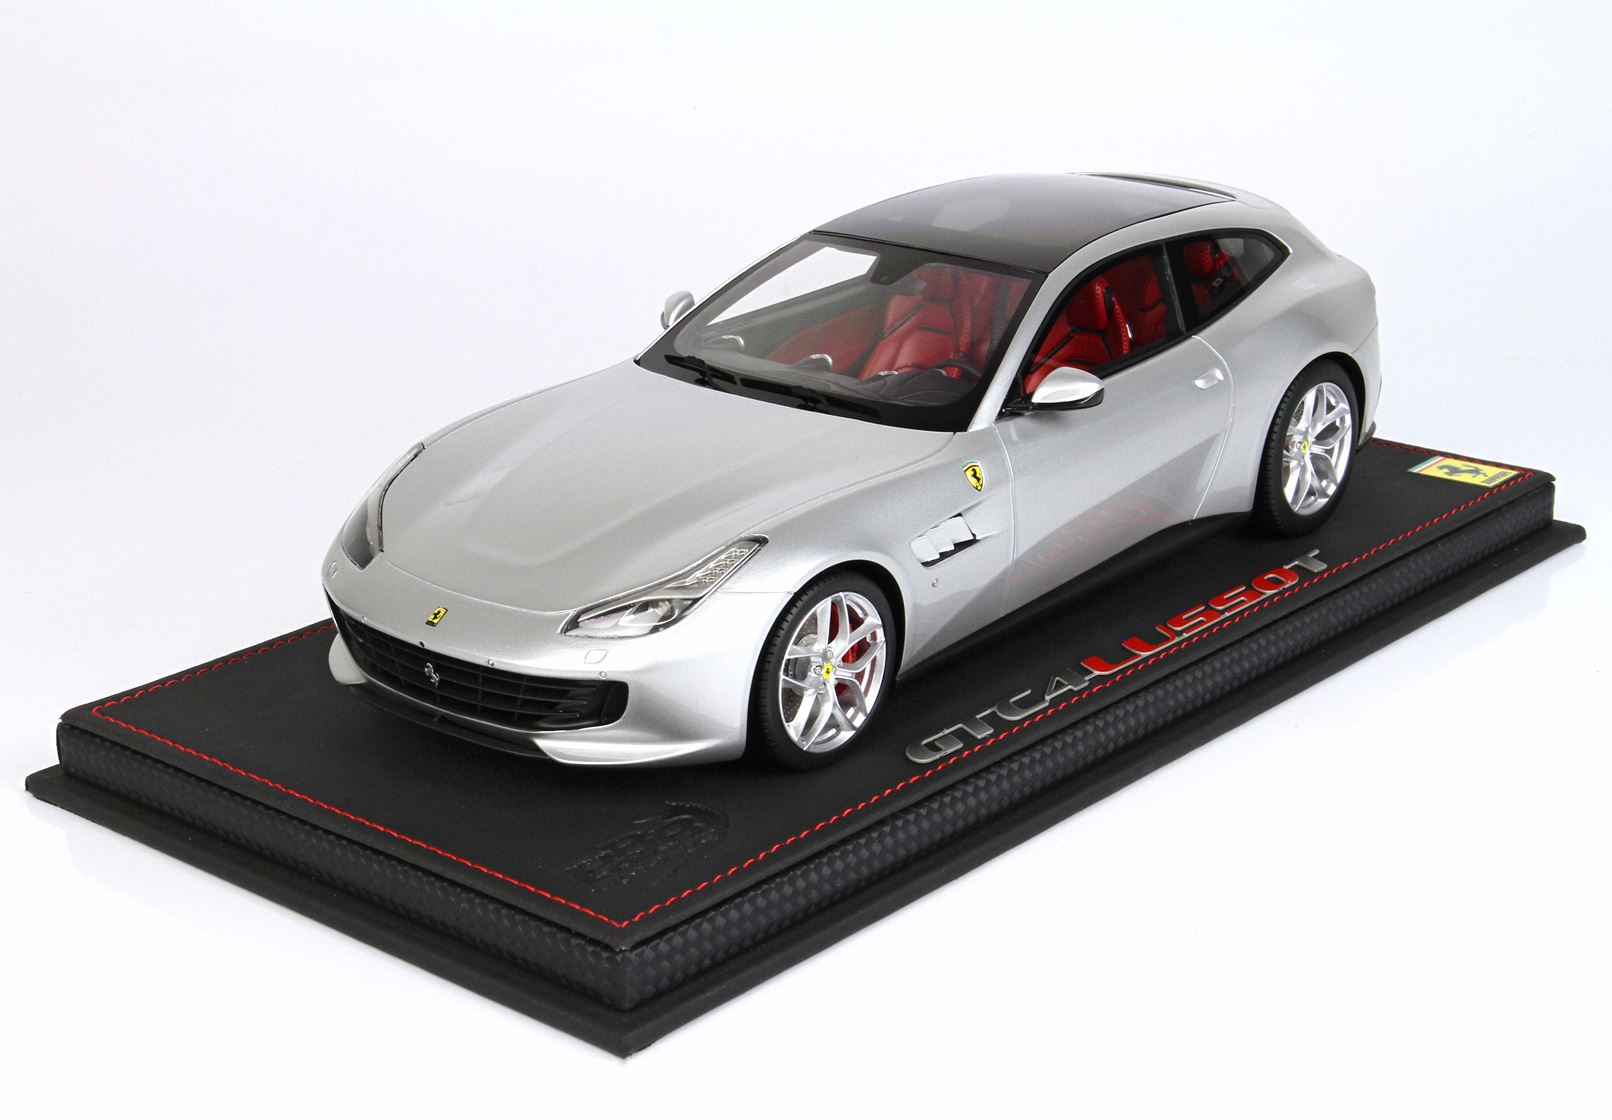 Bbr Ferrari Gtc4 Lusso T Panoramic Roof Argento Nurburgring With Silver Wheels 1 18 Limited Edition Hansecars Modellautos Hansecars Exklusive Sammlermodelle